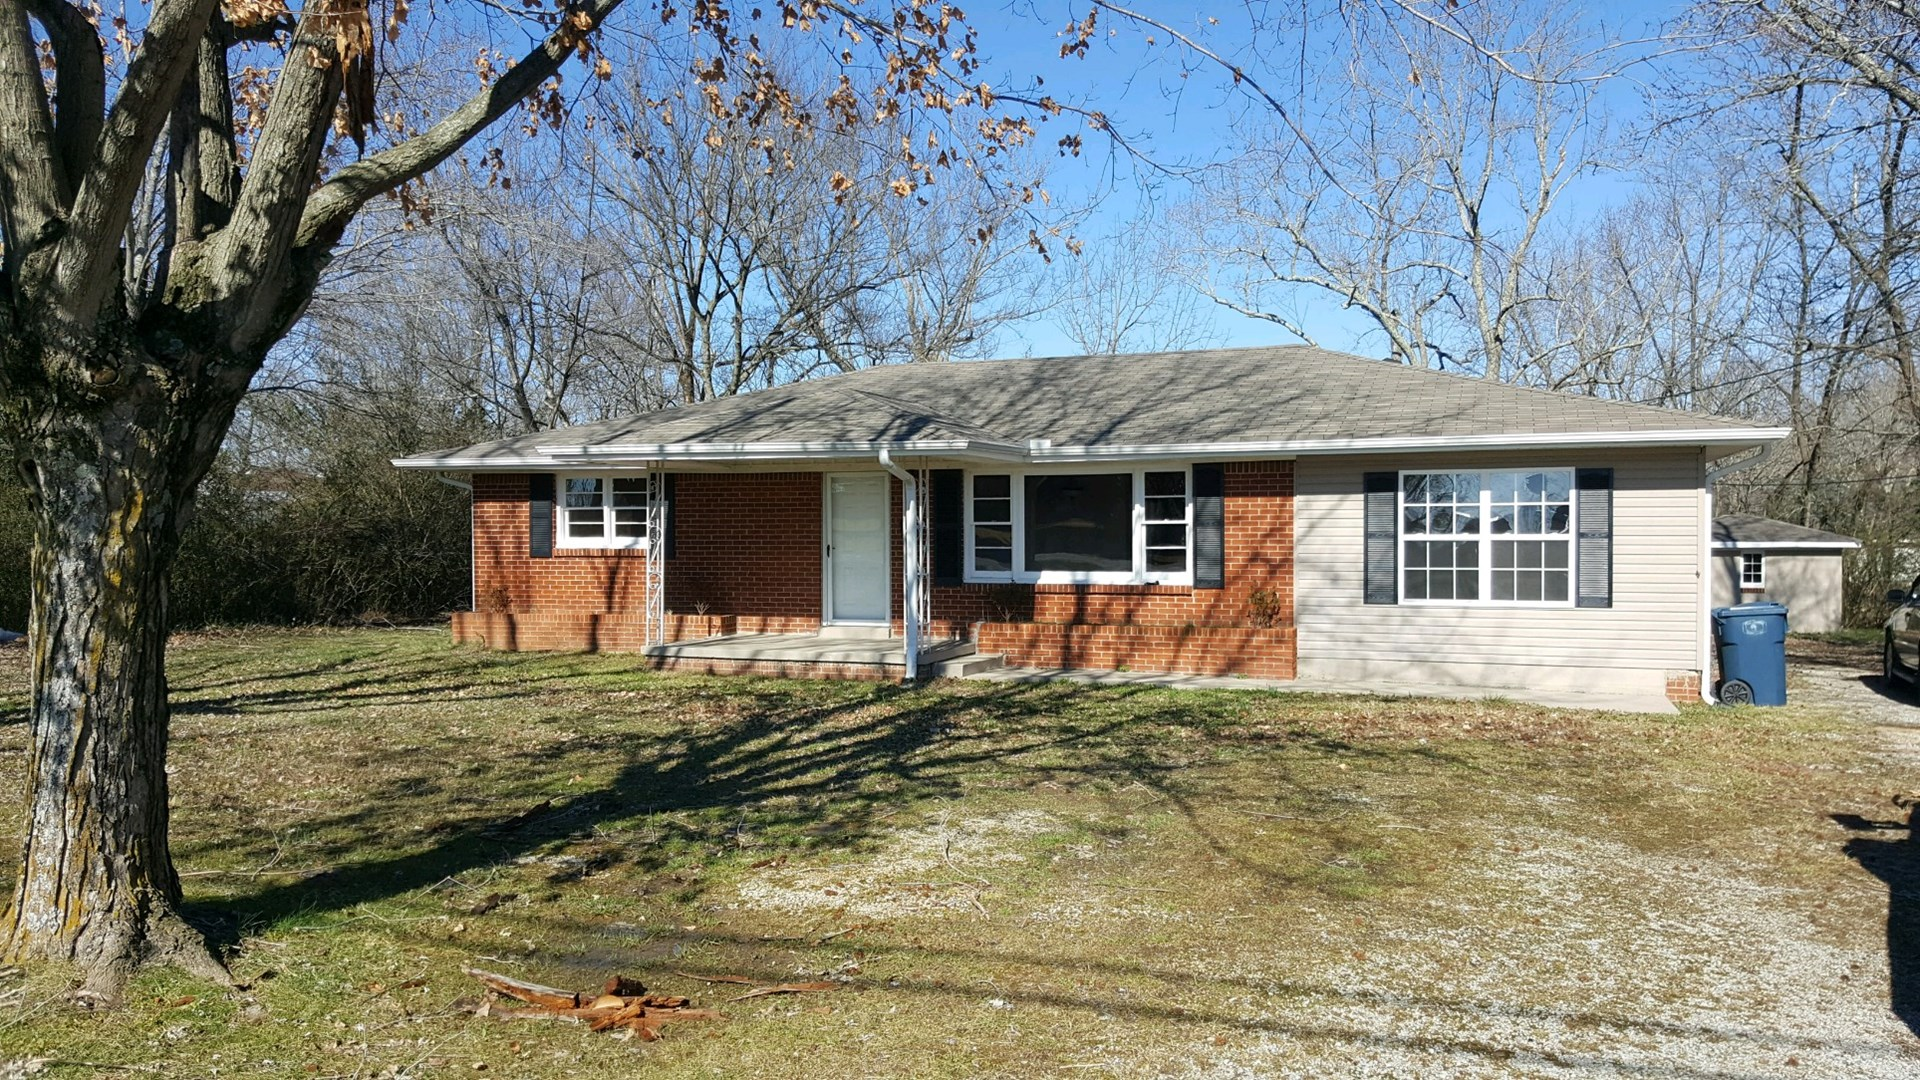 Hohenwald, Tennessee Lewis County Country Home For Sale